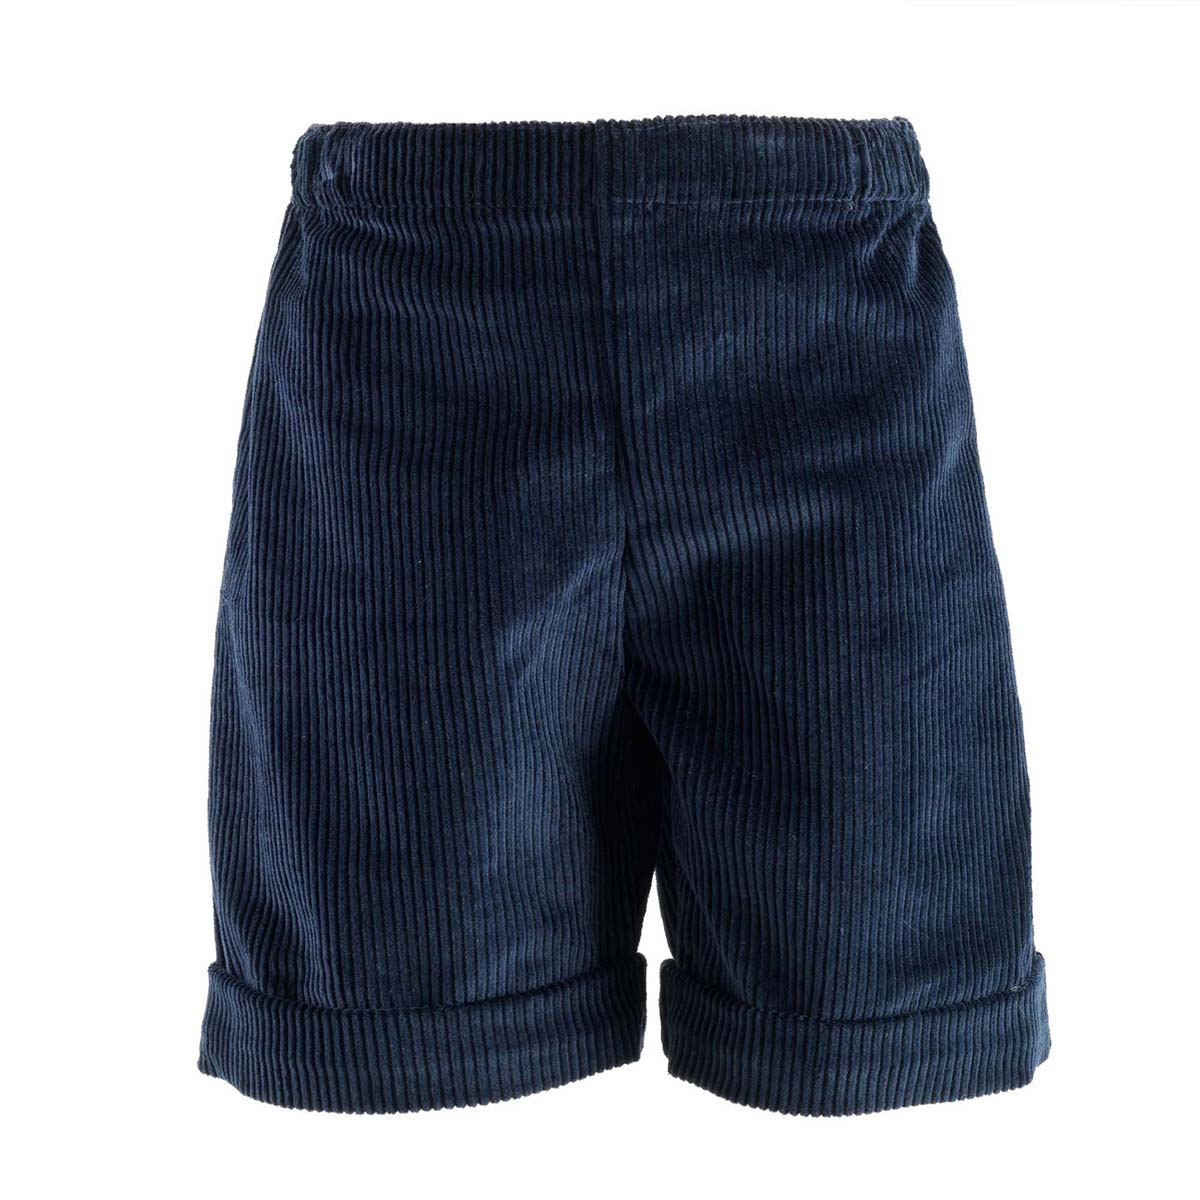 Rachel Riley Navy Corduroy Short